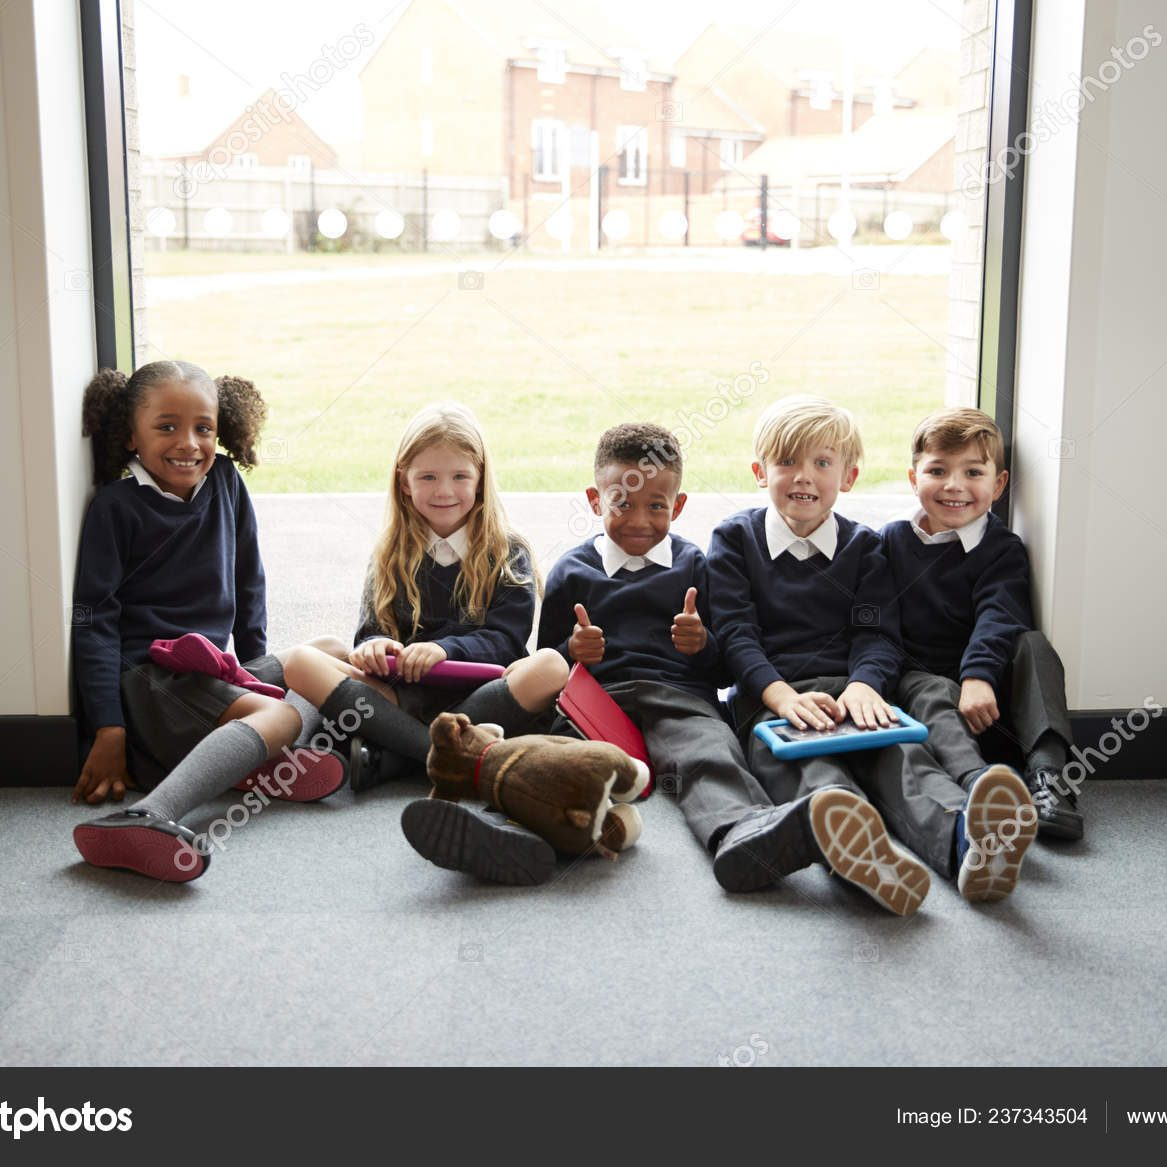 Five primary school friends with tablet computers sitting on the floor in a school corridor at break time, smiling to camera, selective focus